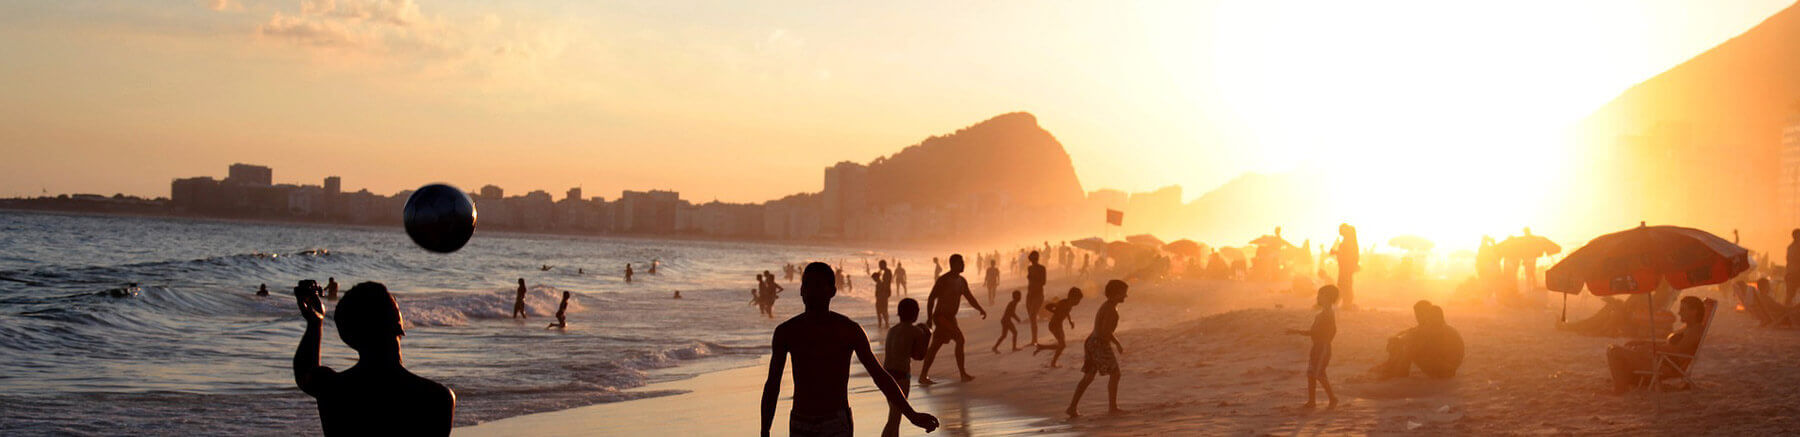 People enjoying Copacabana beach in Rio de Janeiro, Brazil at sunset